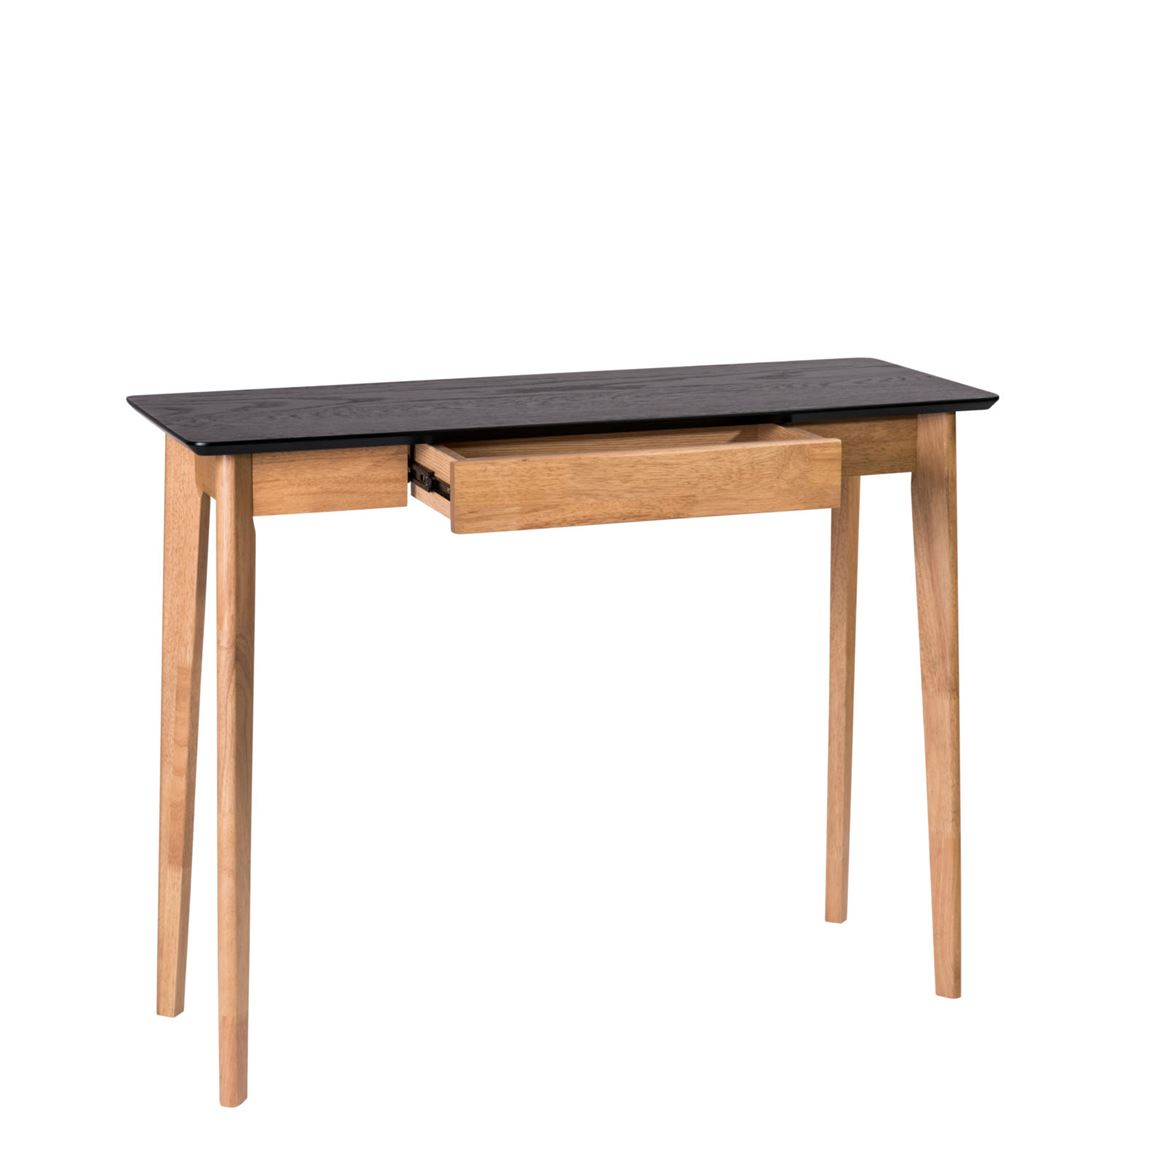 HERNING Table murale noir, naturel H 85 x Larg. 40 x Long. 110 cm_herning-table-murale-noir,-naturel-h-85-x-larg--40-x-long--110-cm